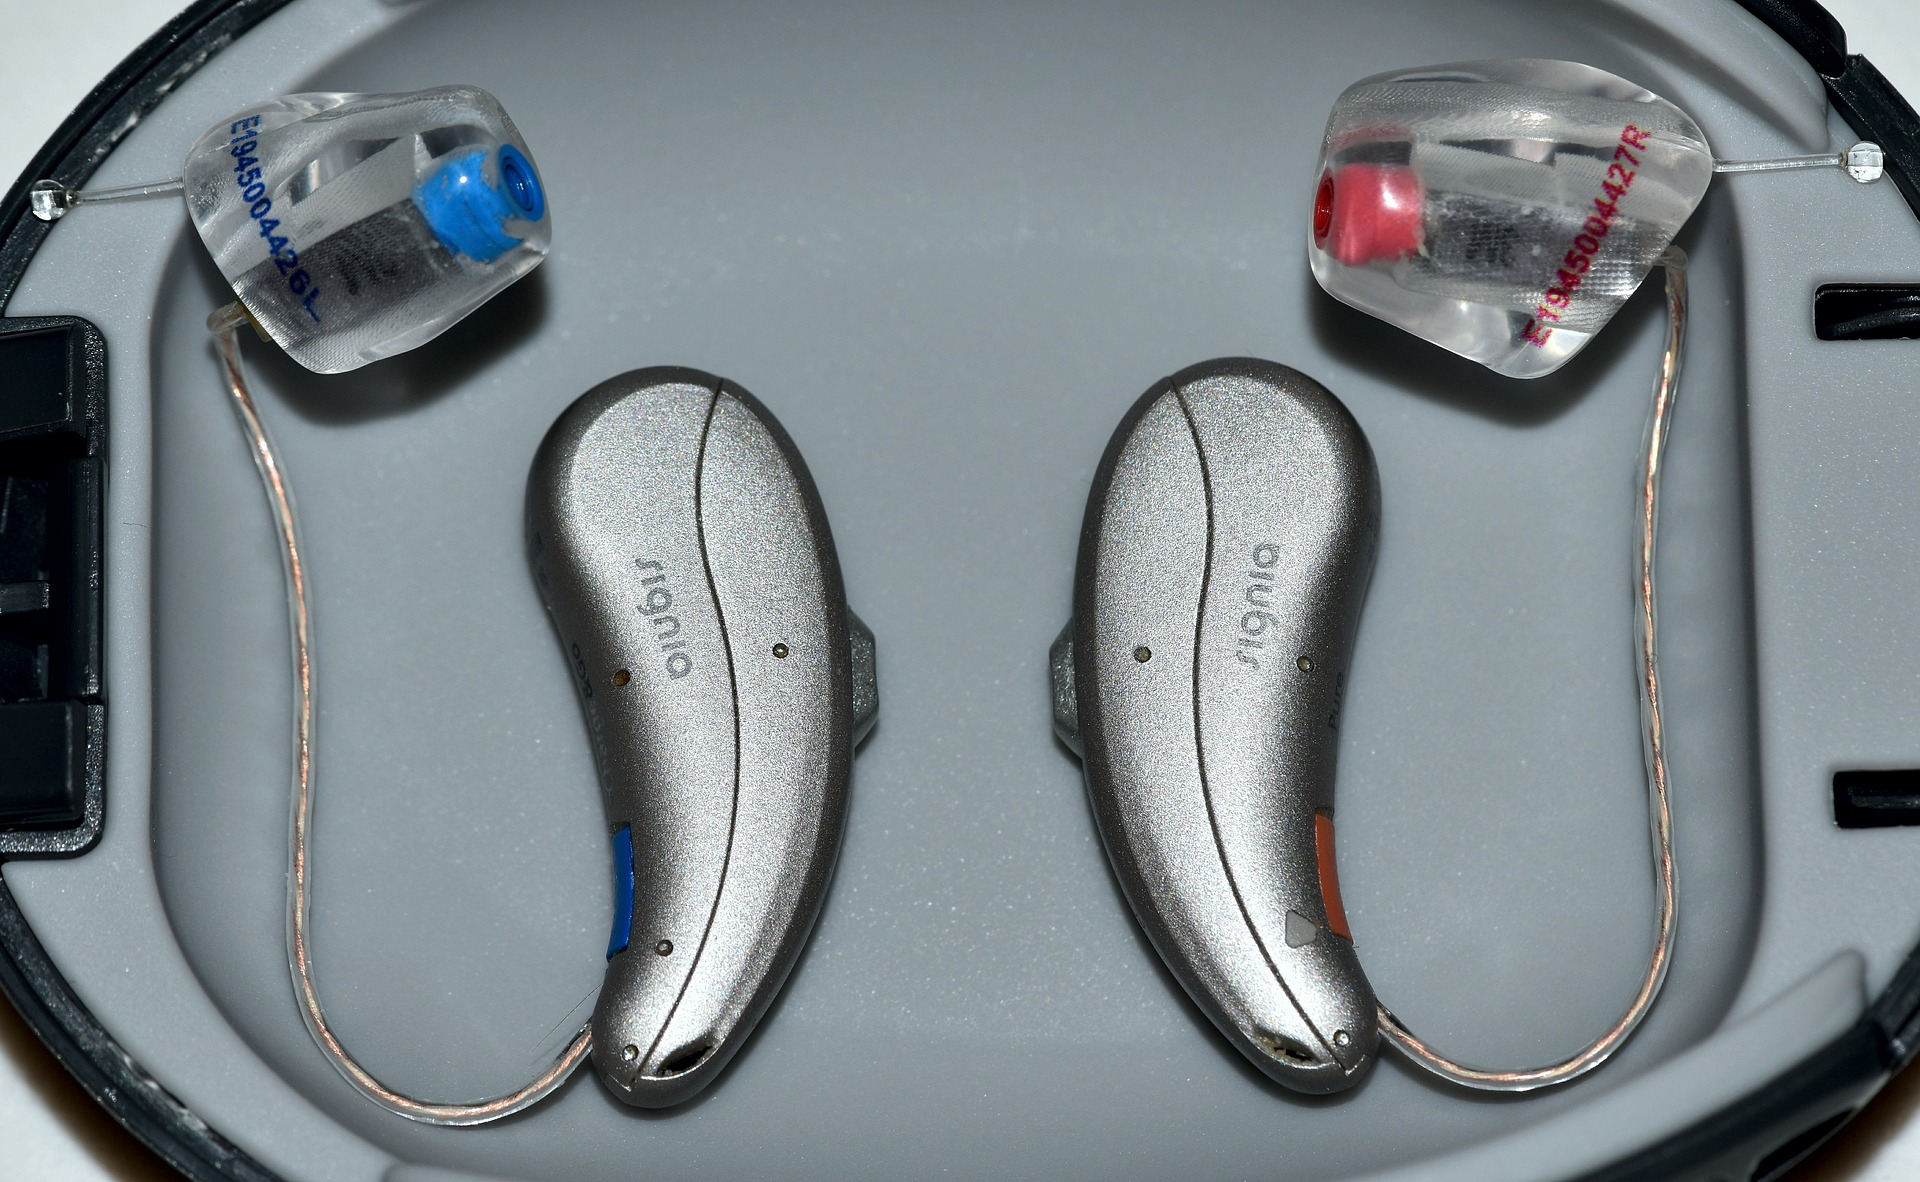 Which Brand Of Hearing Aid Is The Best?